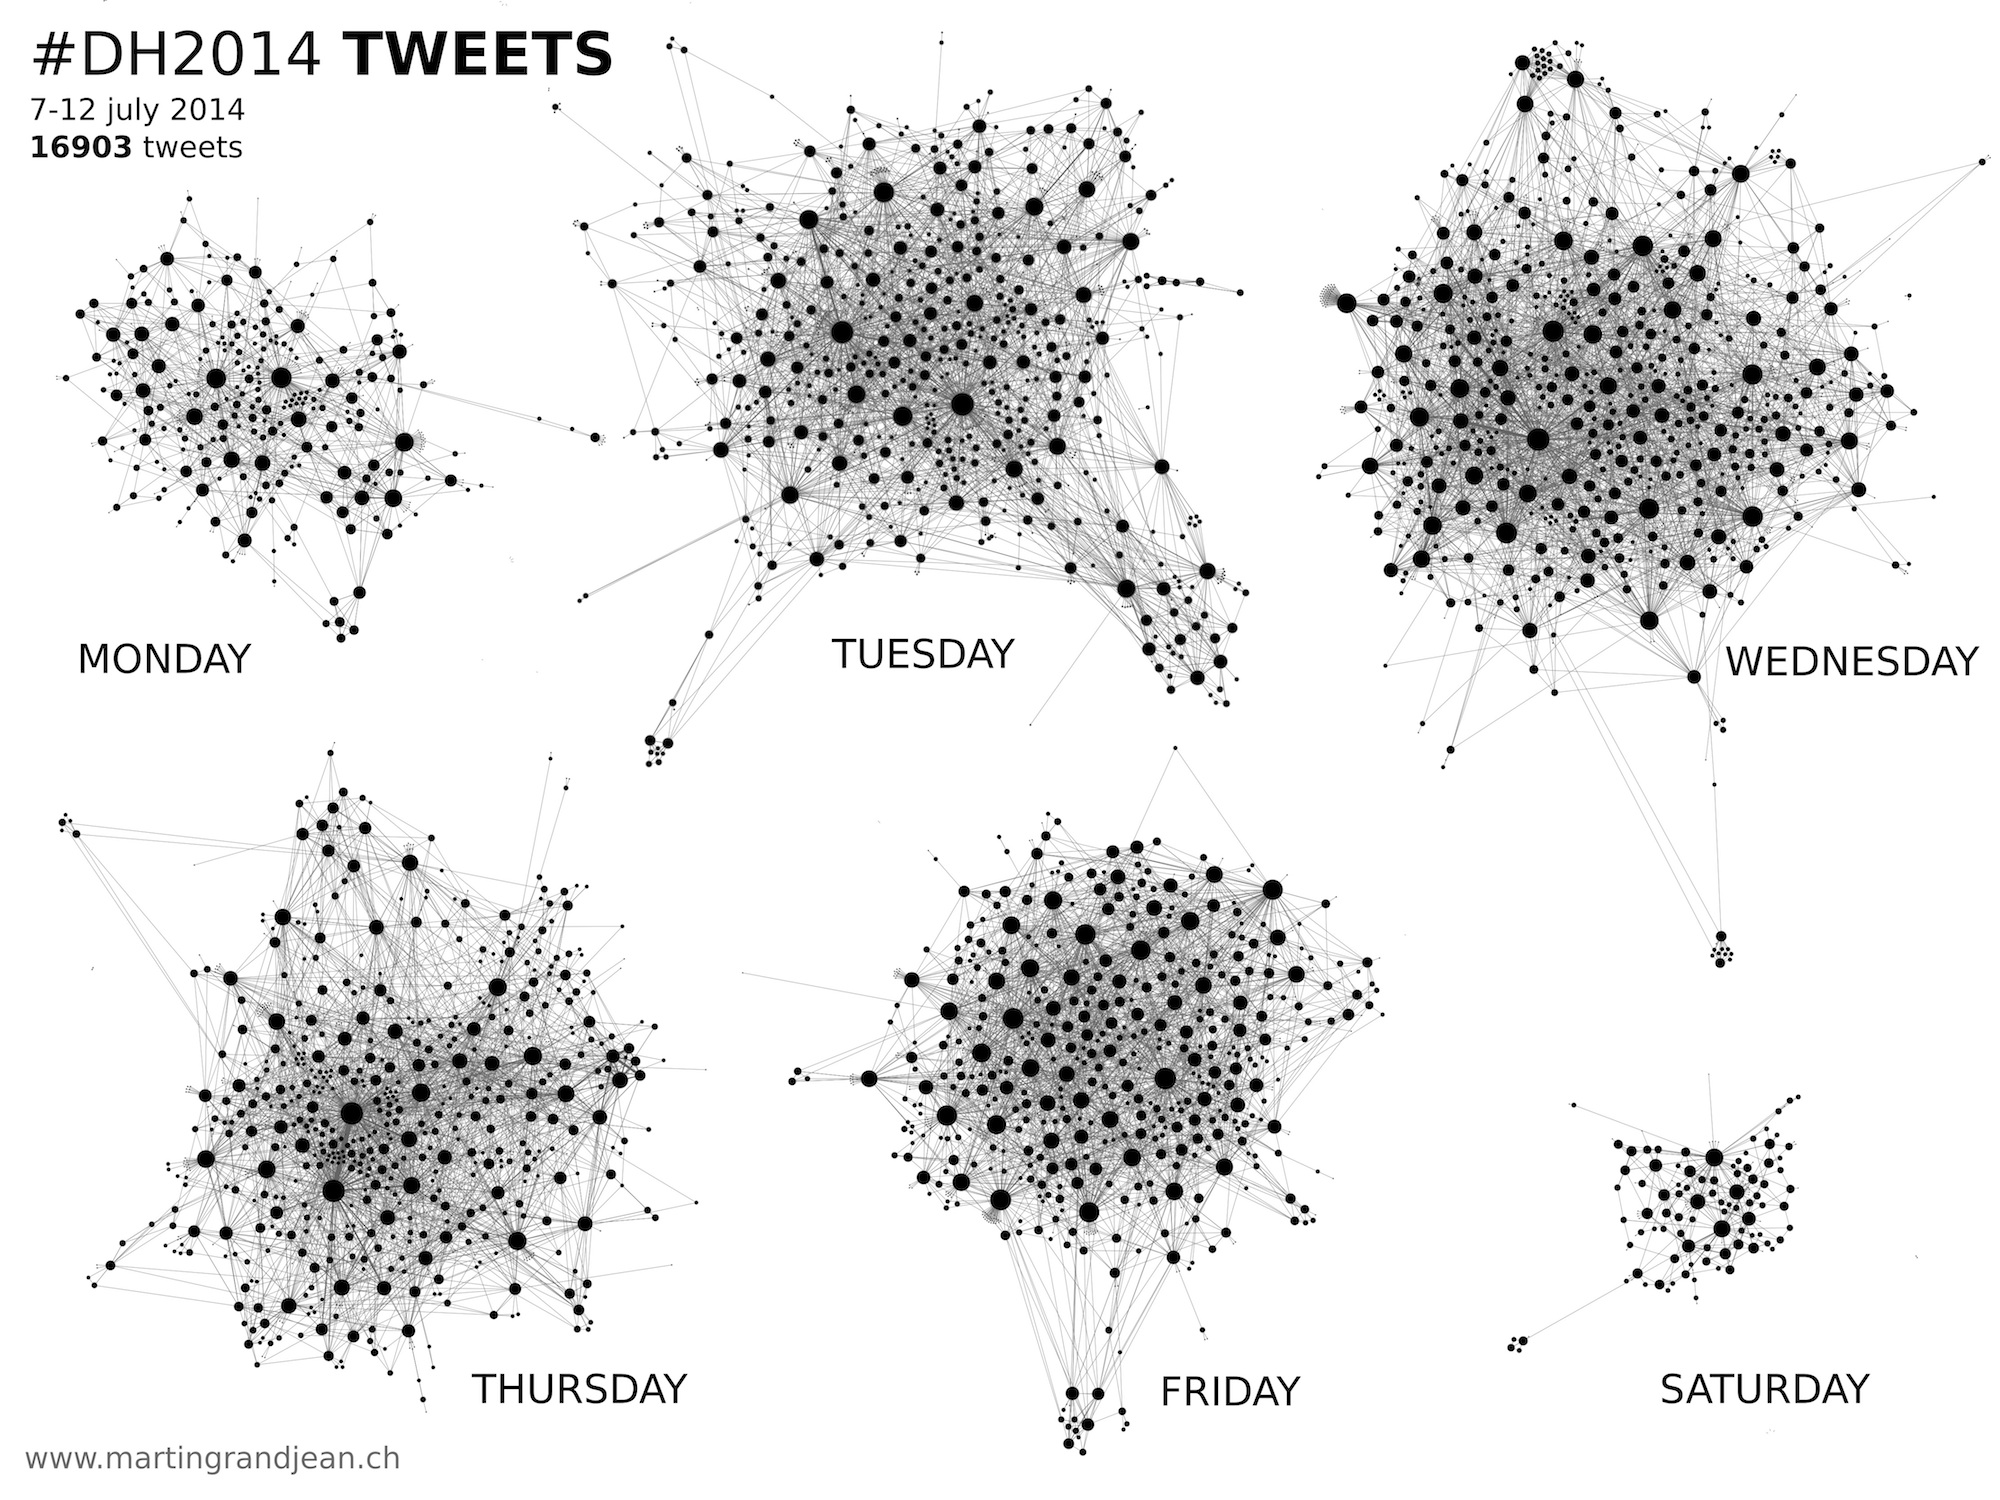 #DH2014 Digital Humanities conference 2014 in Lausanne (twitter stats)